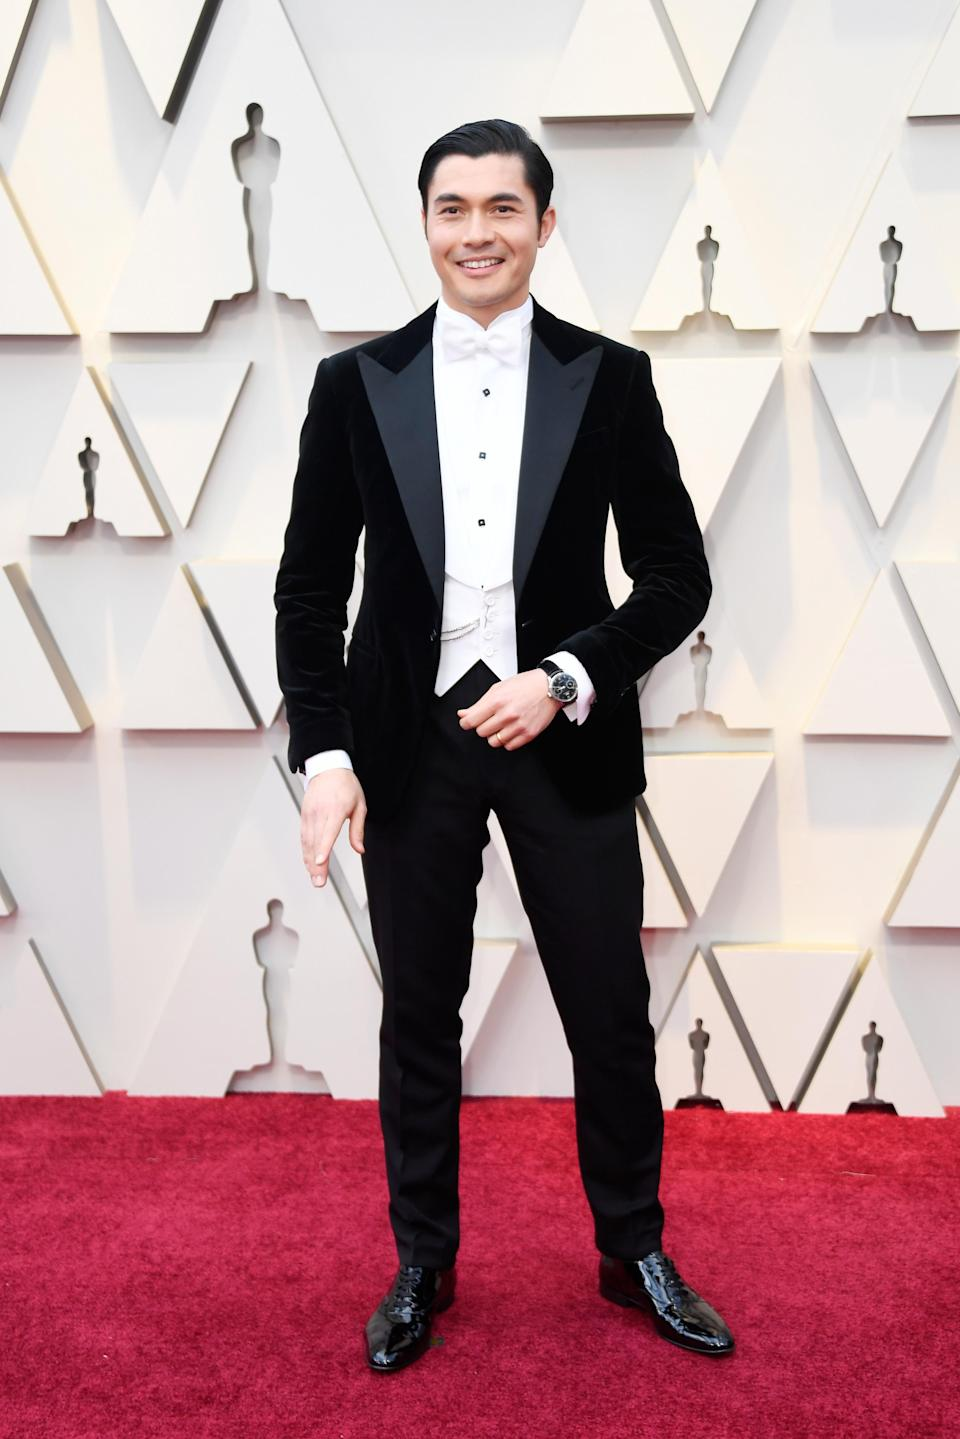 """<p>The """"Crazy Rich Asians"""" star brought back Old Hollywood glamour in a custom tuxedo by Ralph Lauren. (Image via Getty Images) </p>"""